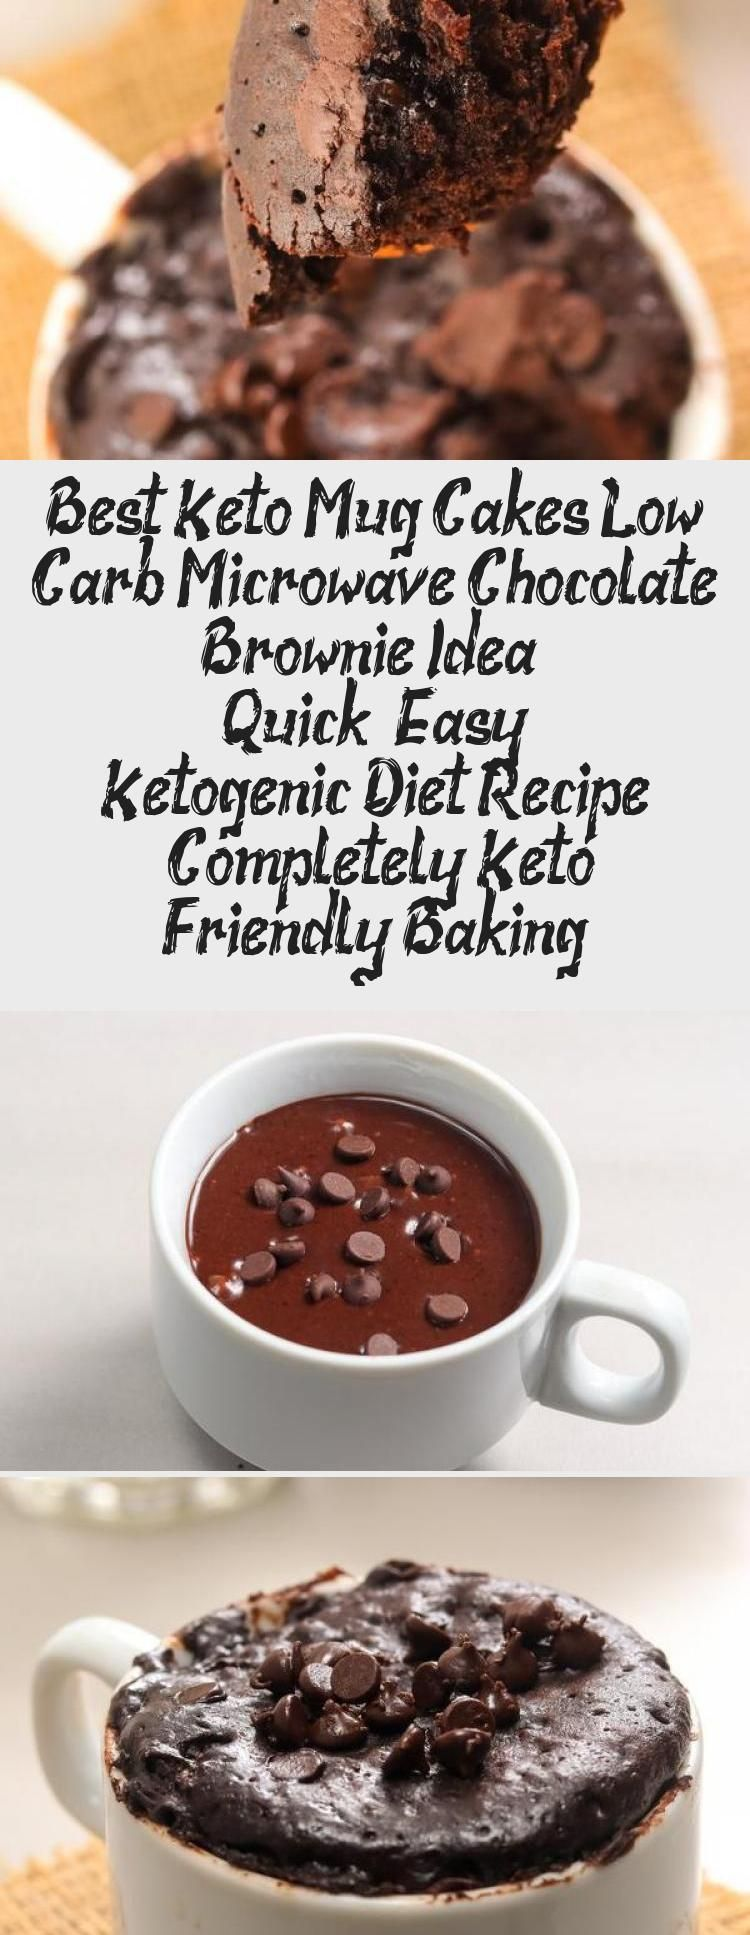 Keto Brownie Mug Cake! Easy low carb keto mug brownie ...